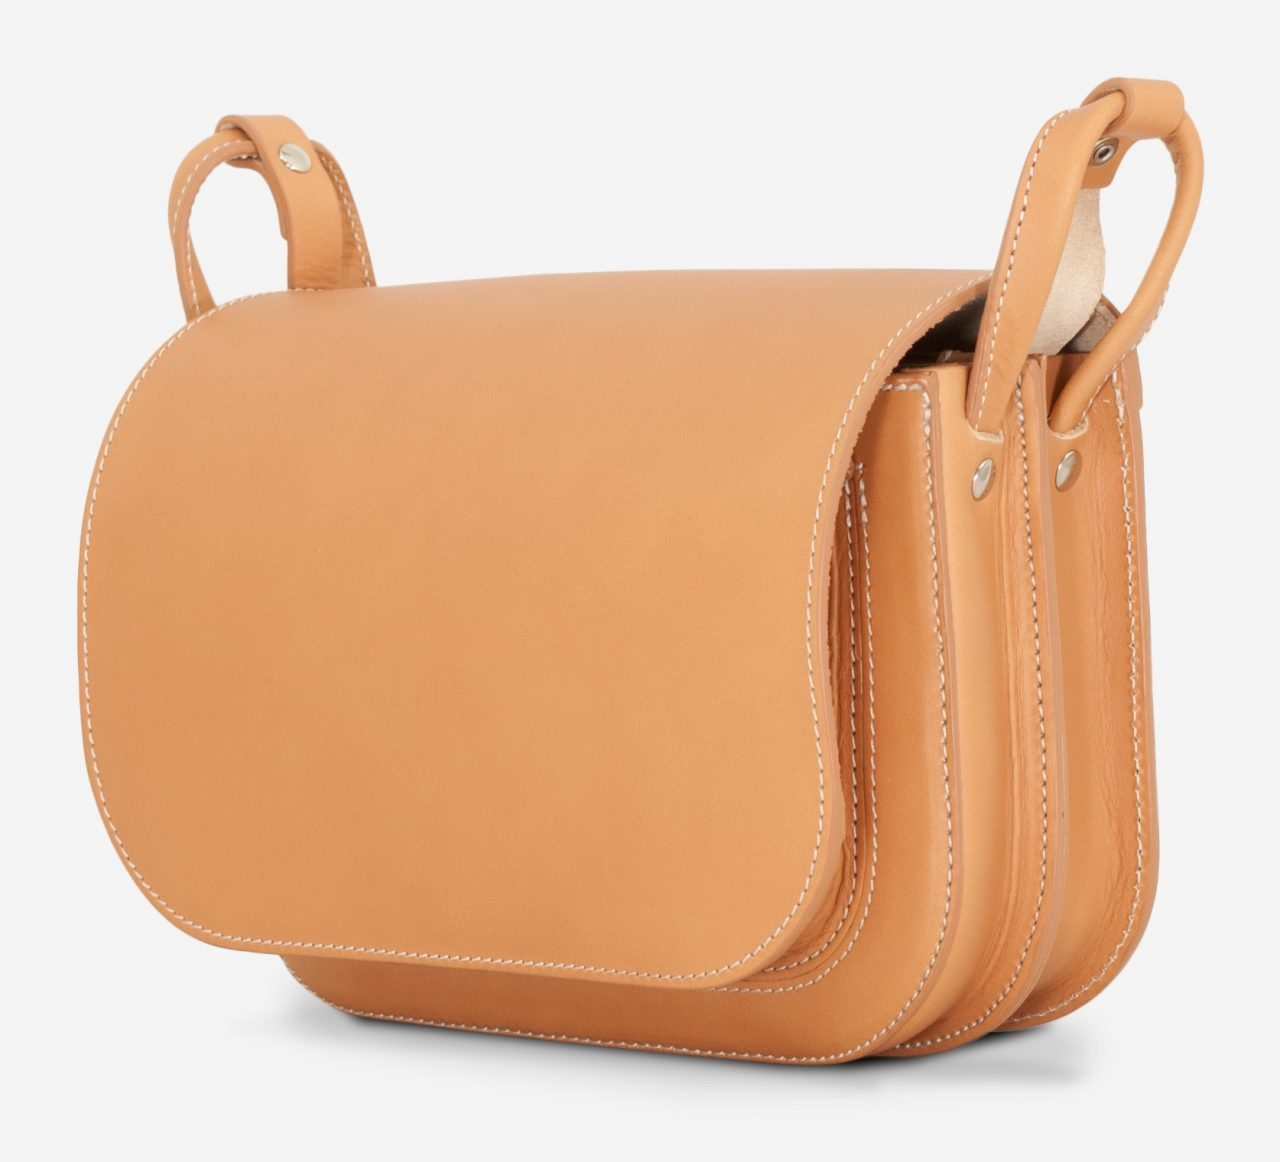 Side of the vegetable tanned leather shoulder bag for women with 2 compartments.